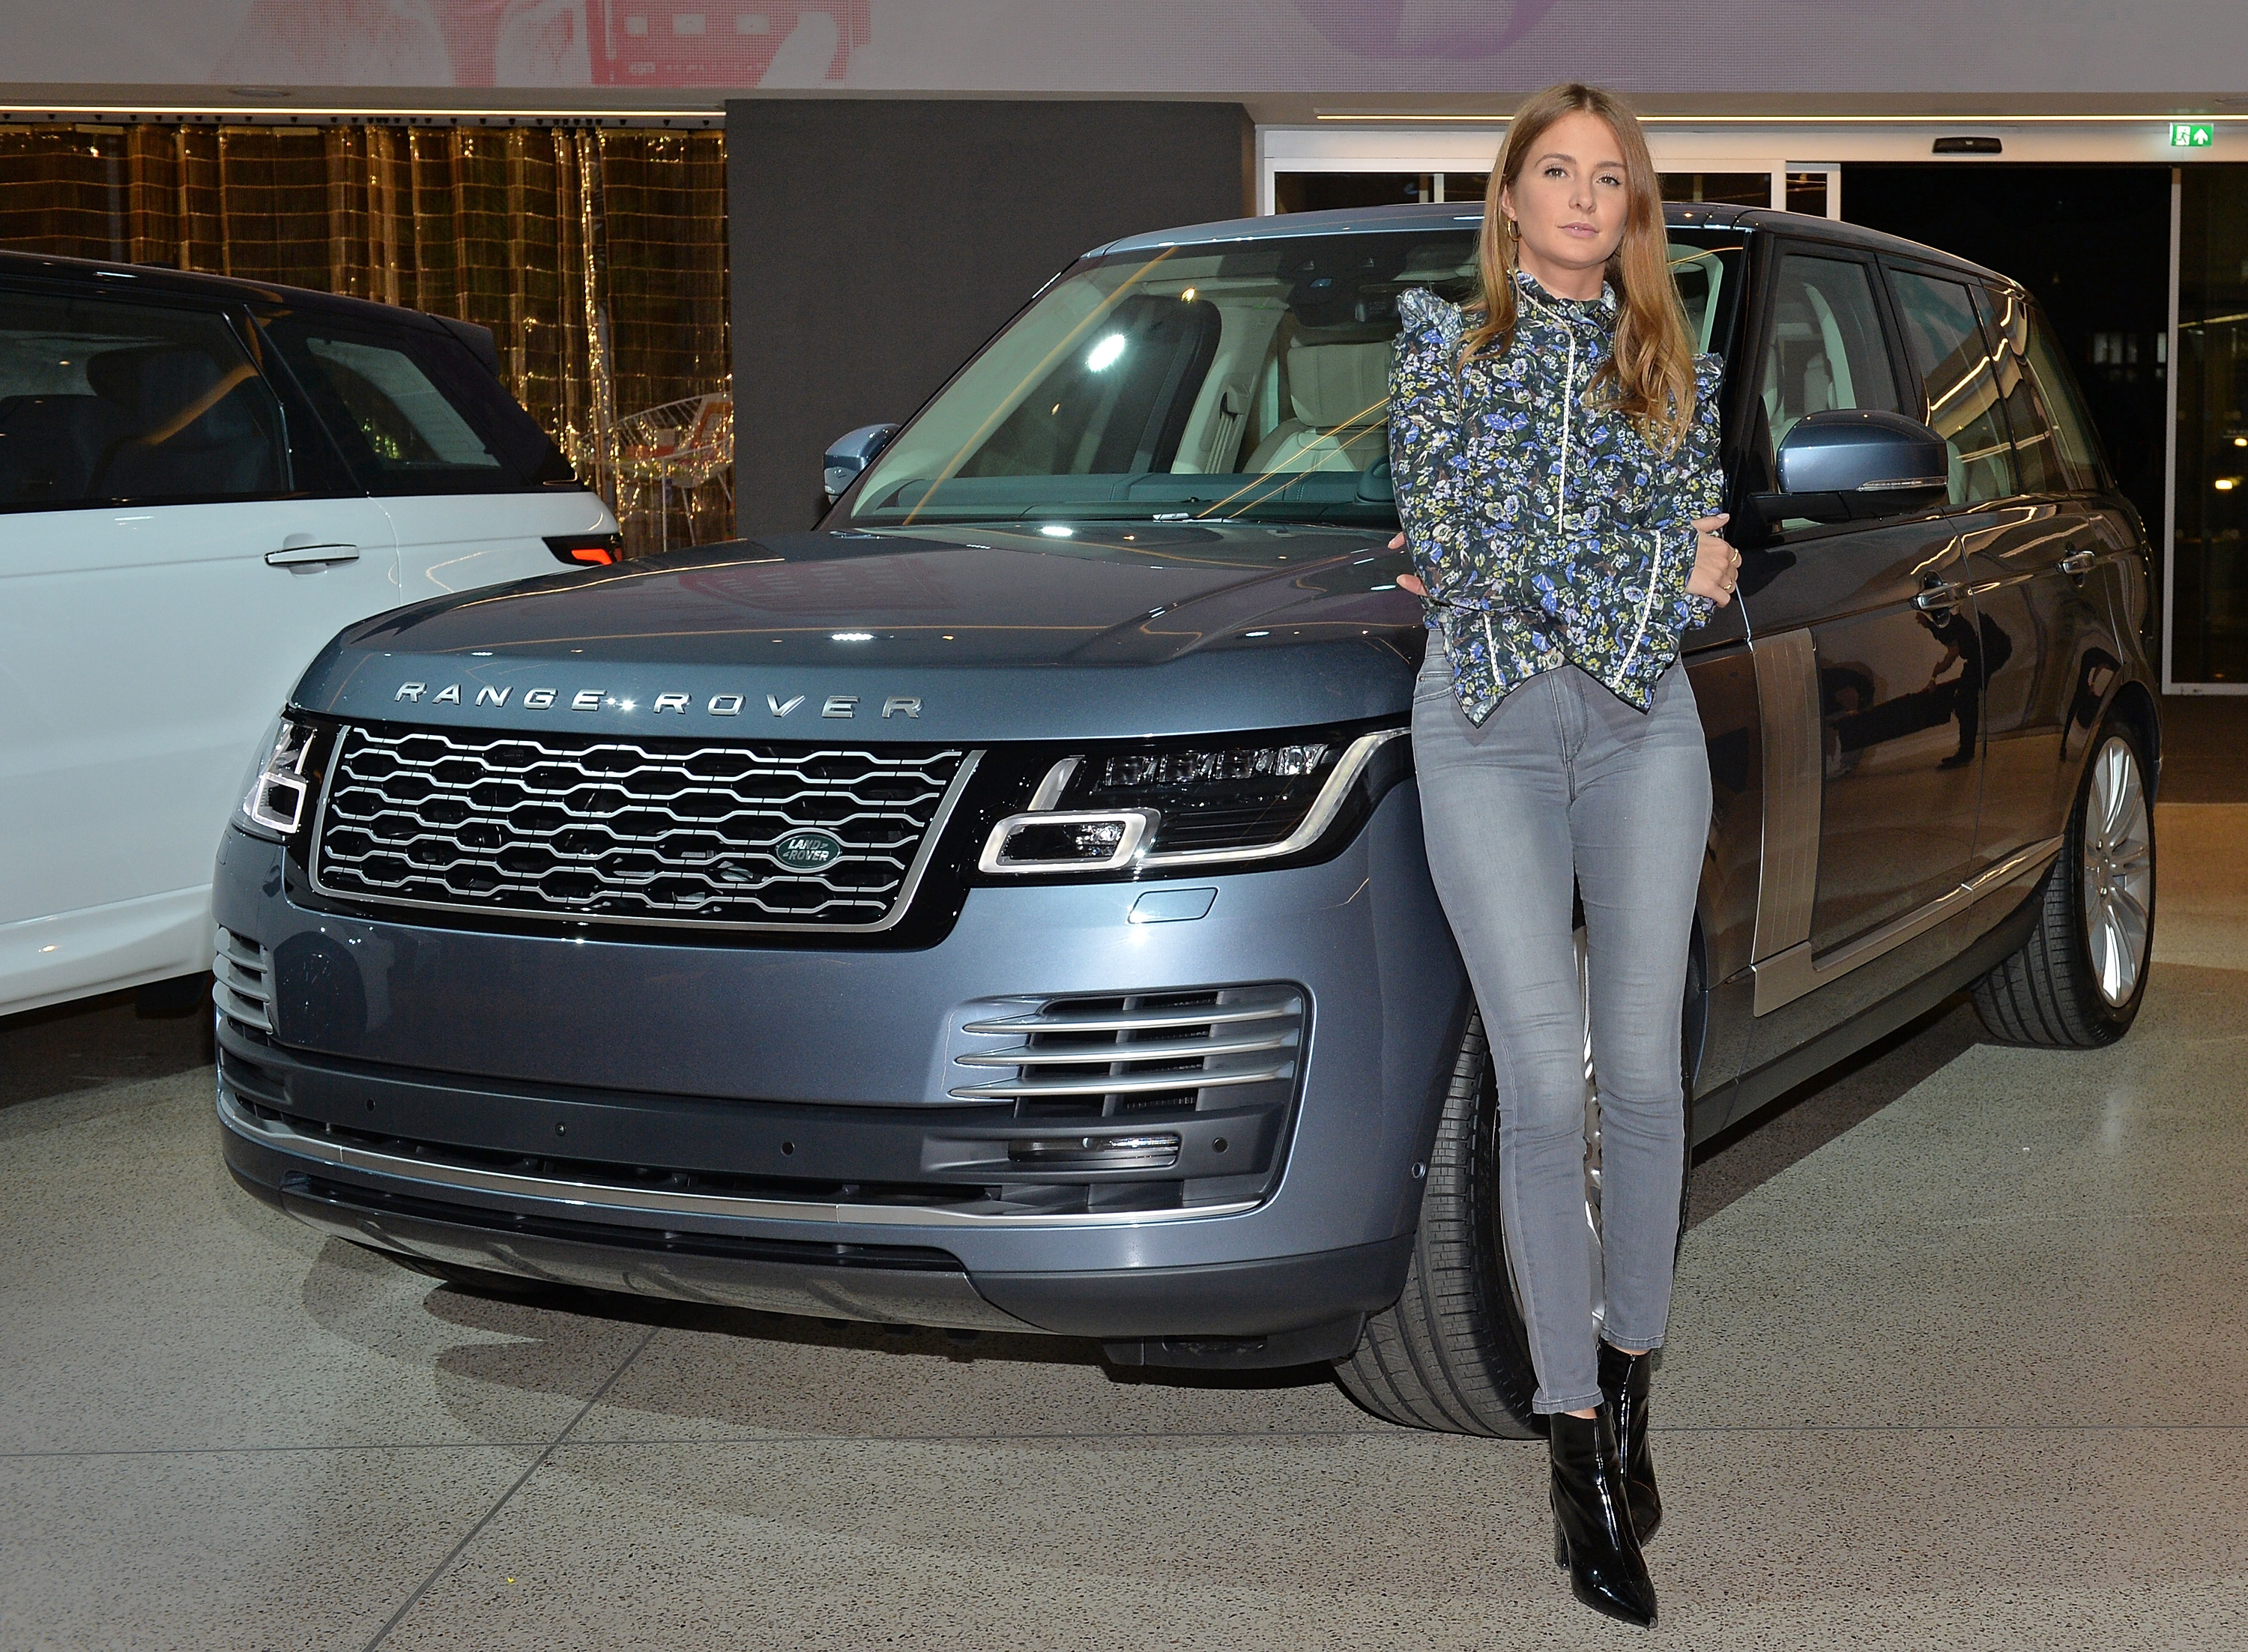 pictures specs geneva magazine show coupe prices sv car landrover the land by first official news rover inside range new motor revealed